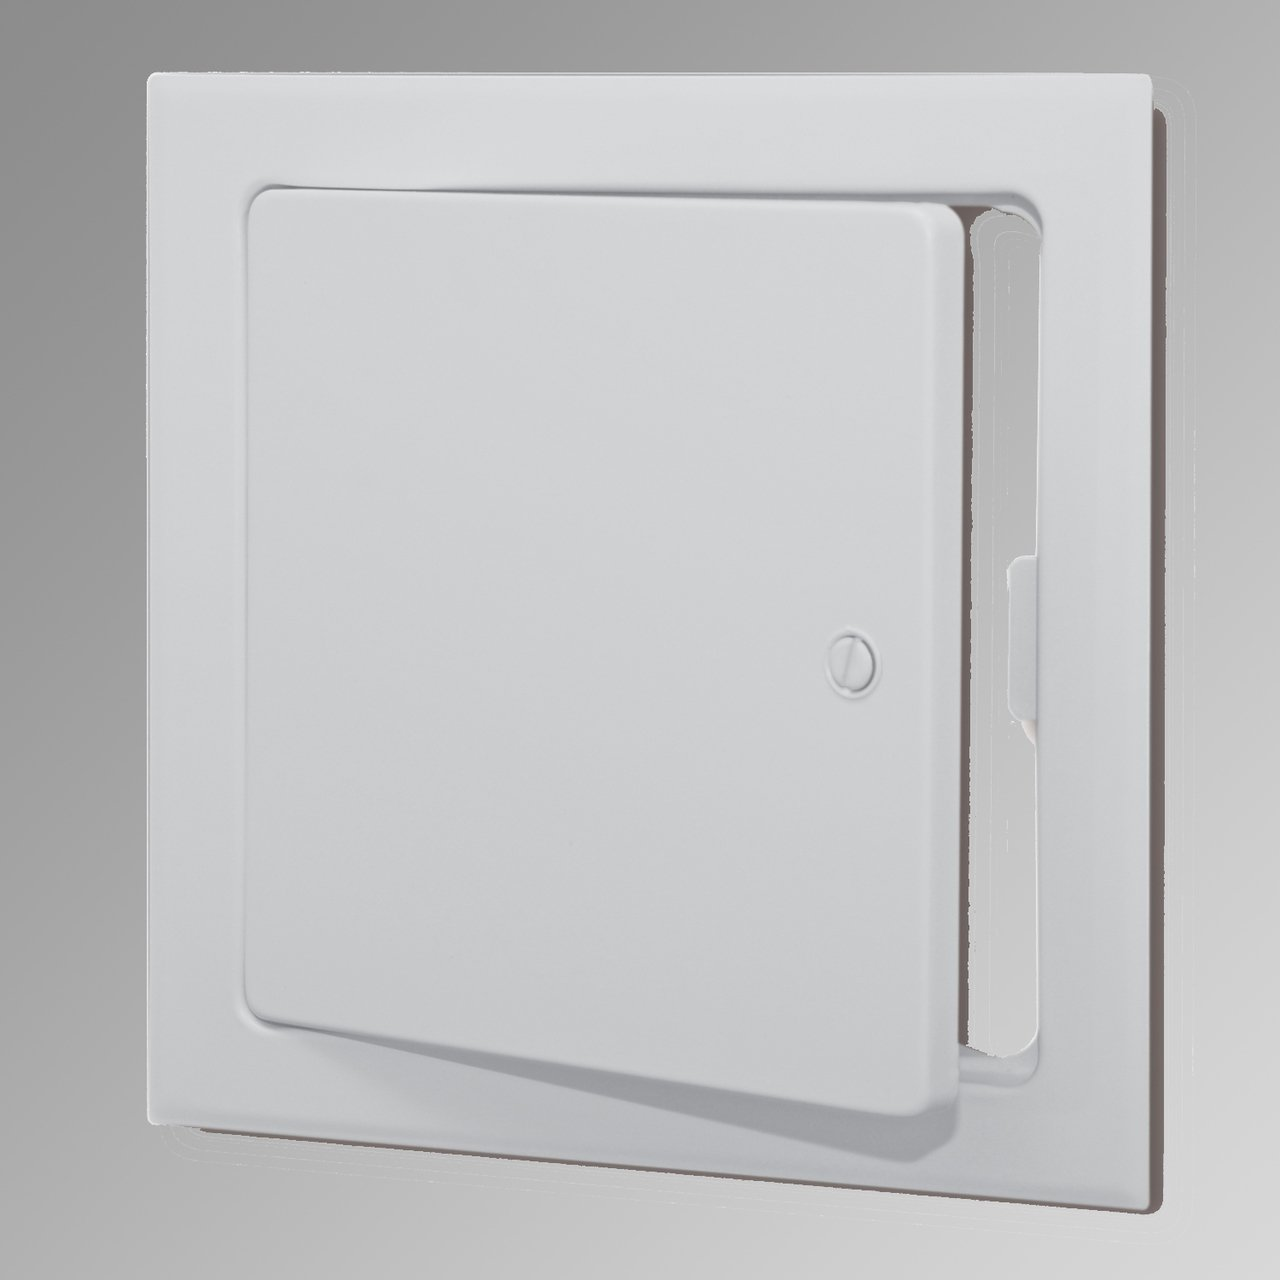 Bombing new work Acudor - Mail order UF-5500 Series Z92424SCWH 24x24 Universal Flush Mount